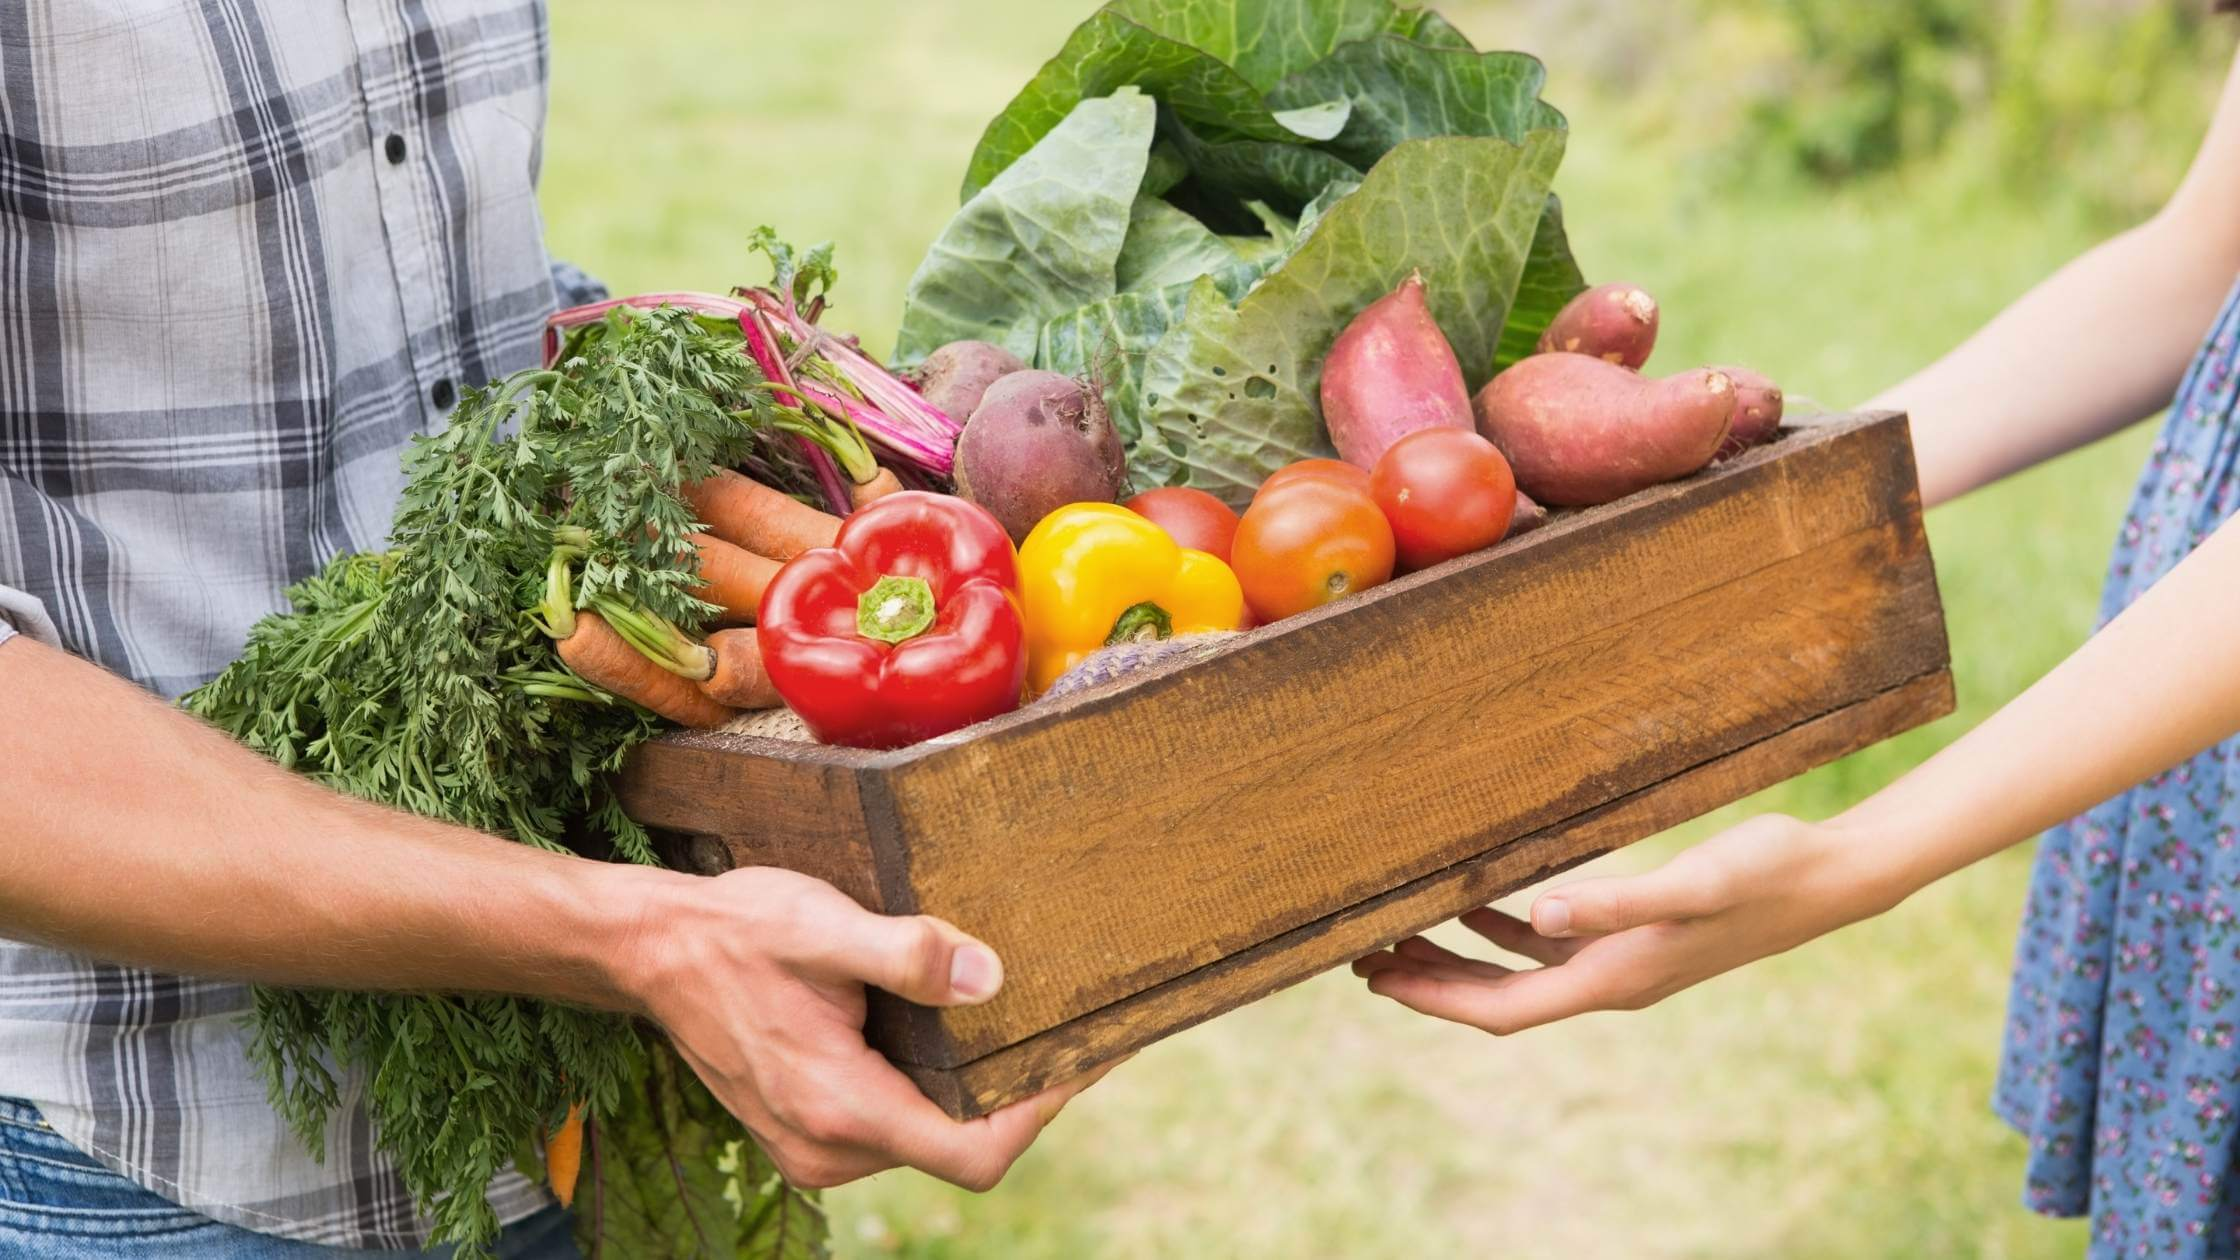 person handing box of vegetables to another person